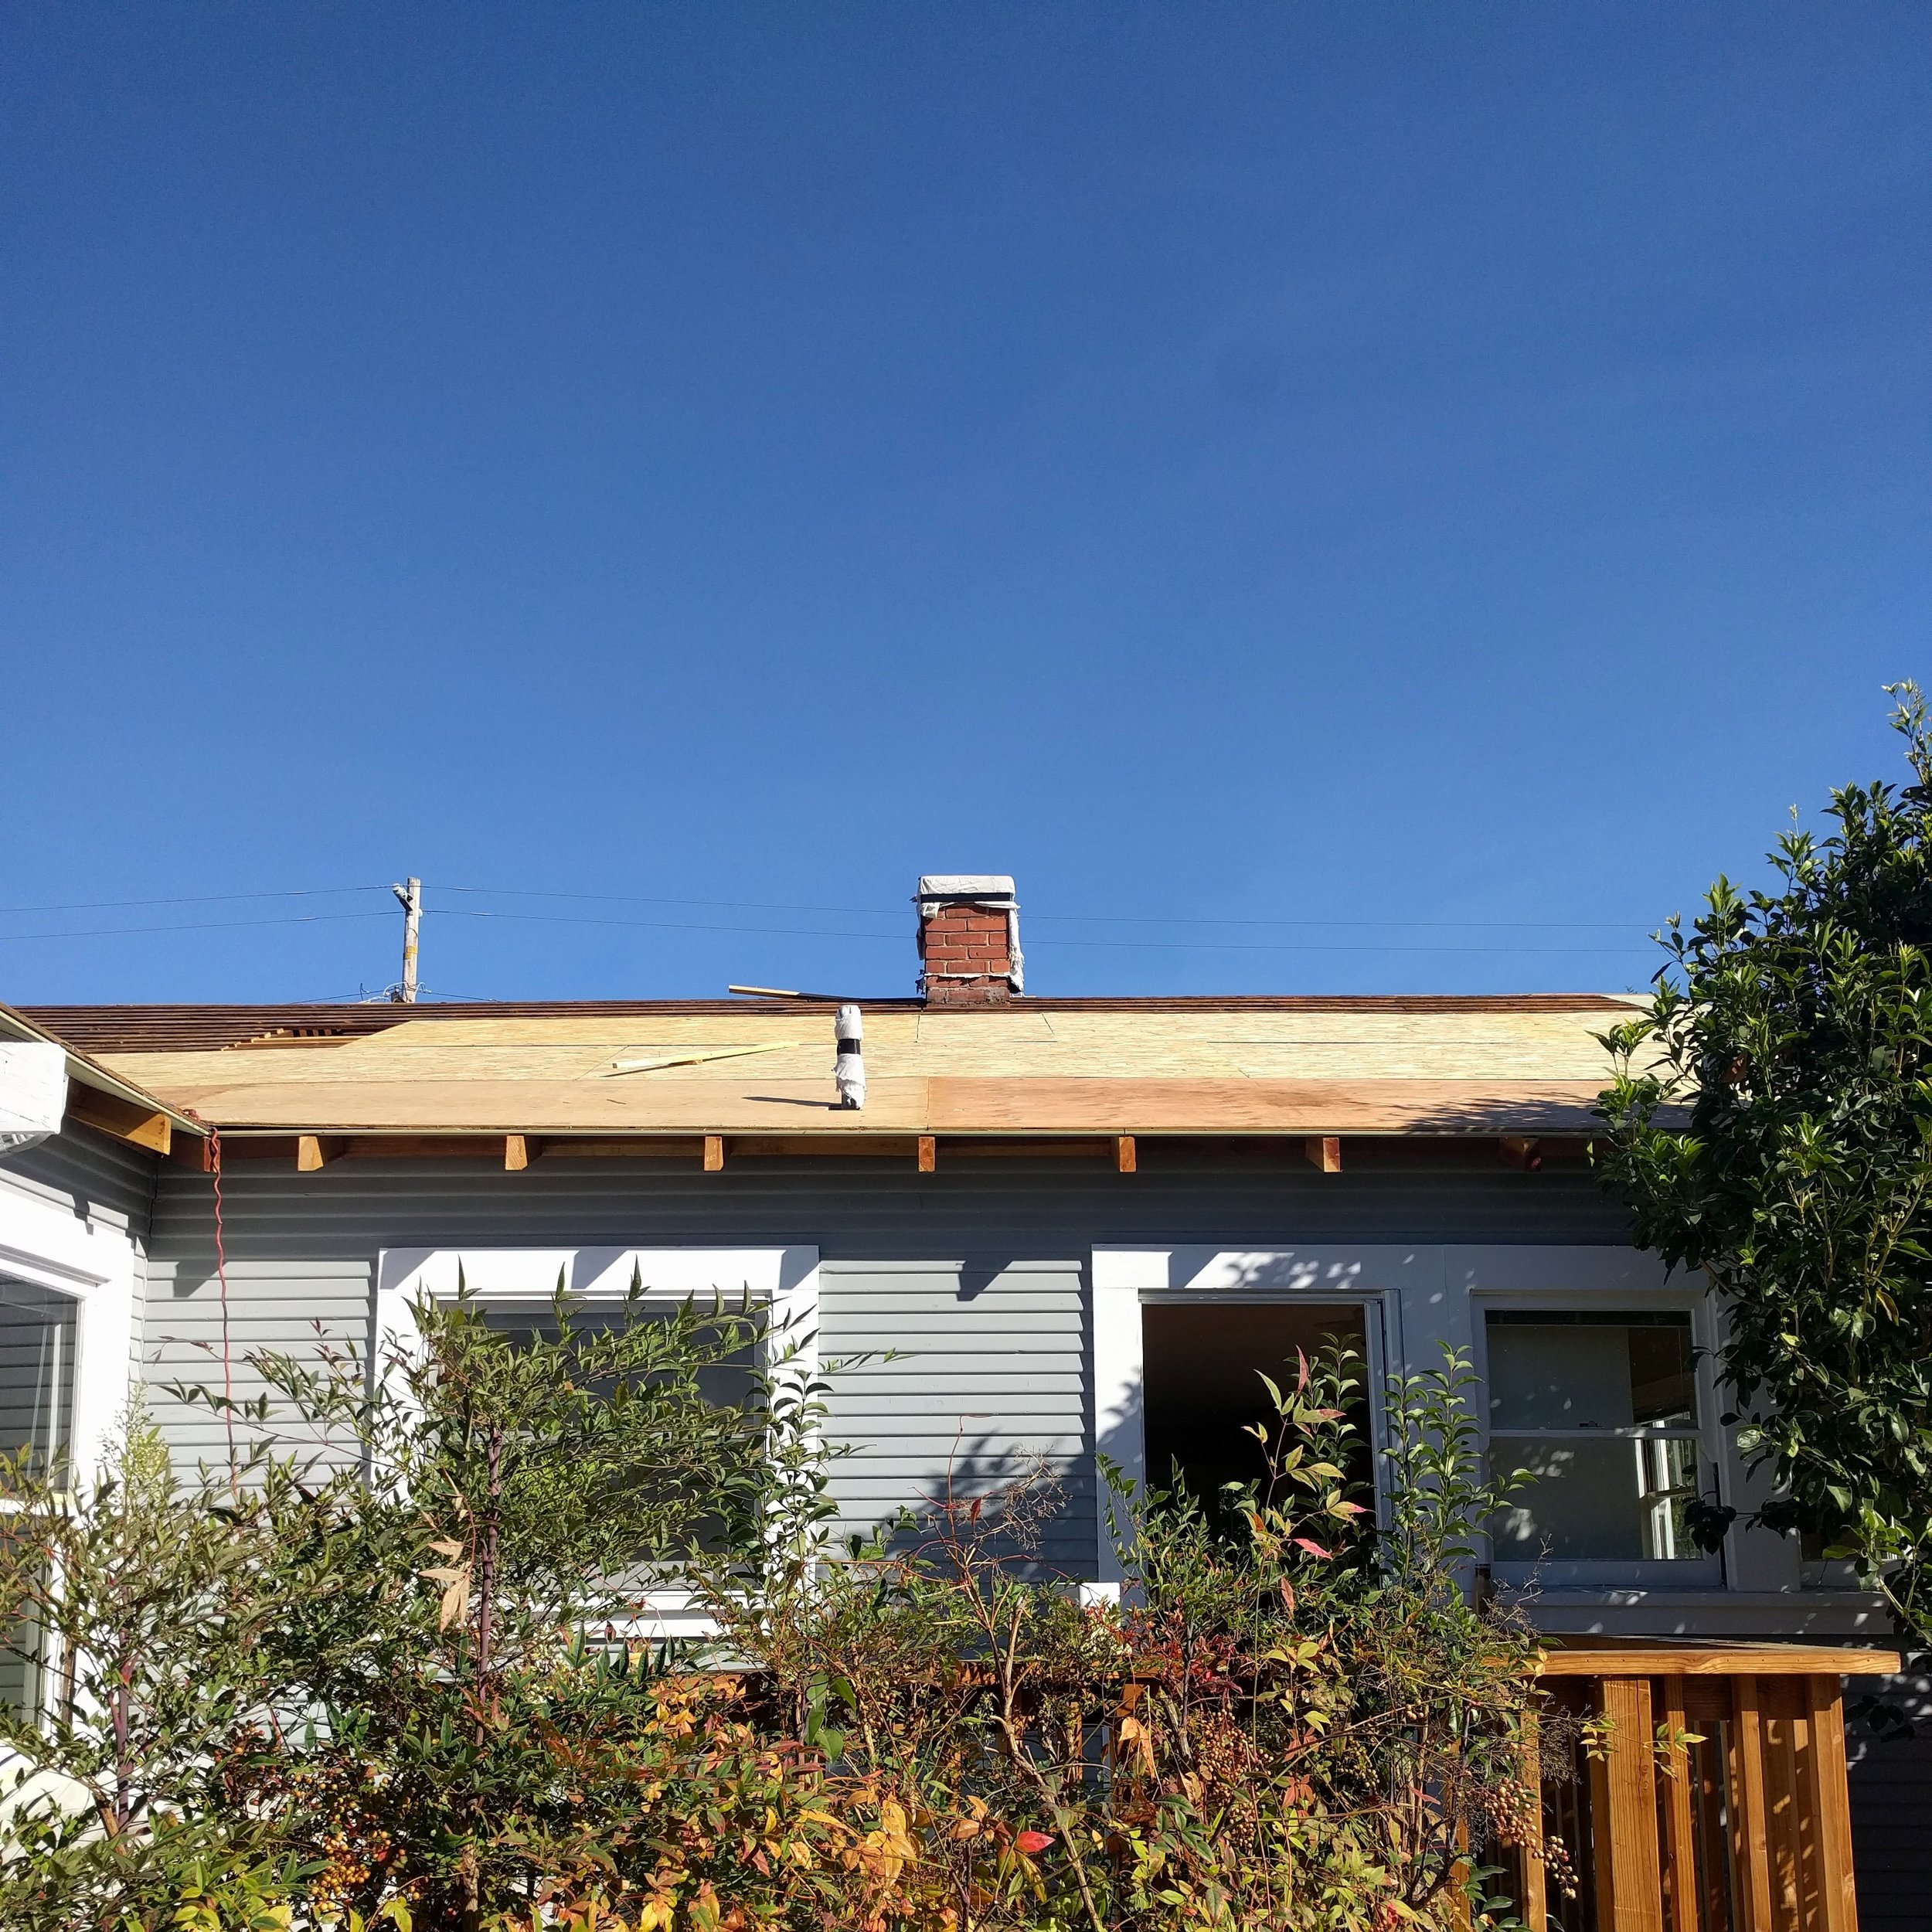 """The rear of the house now has new eaves and sheathing instead of """"skylights."""""""